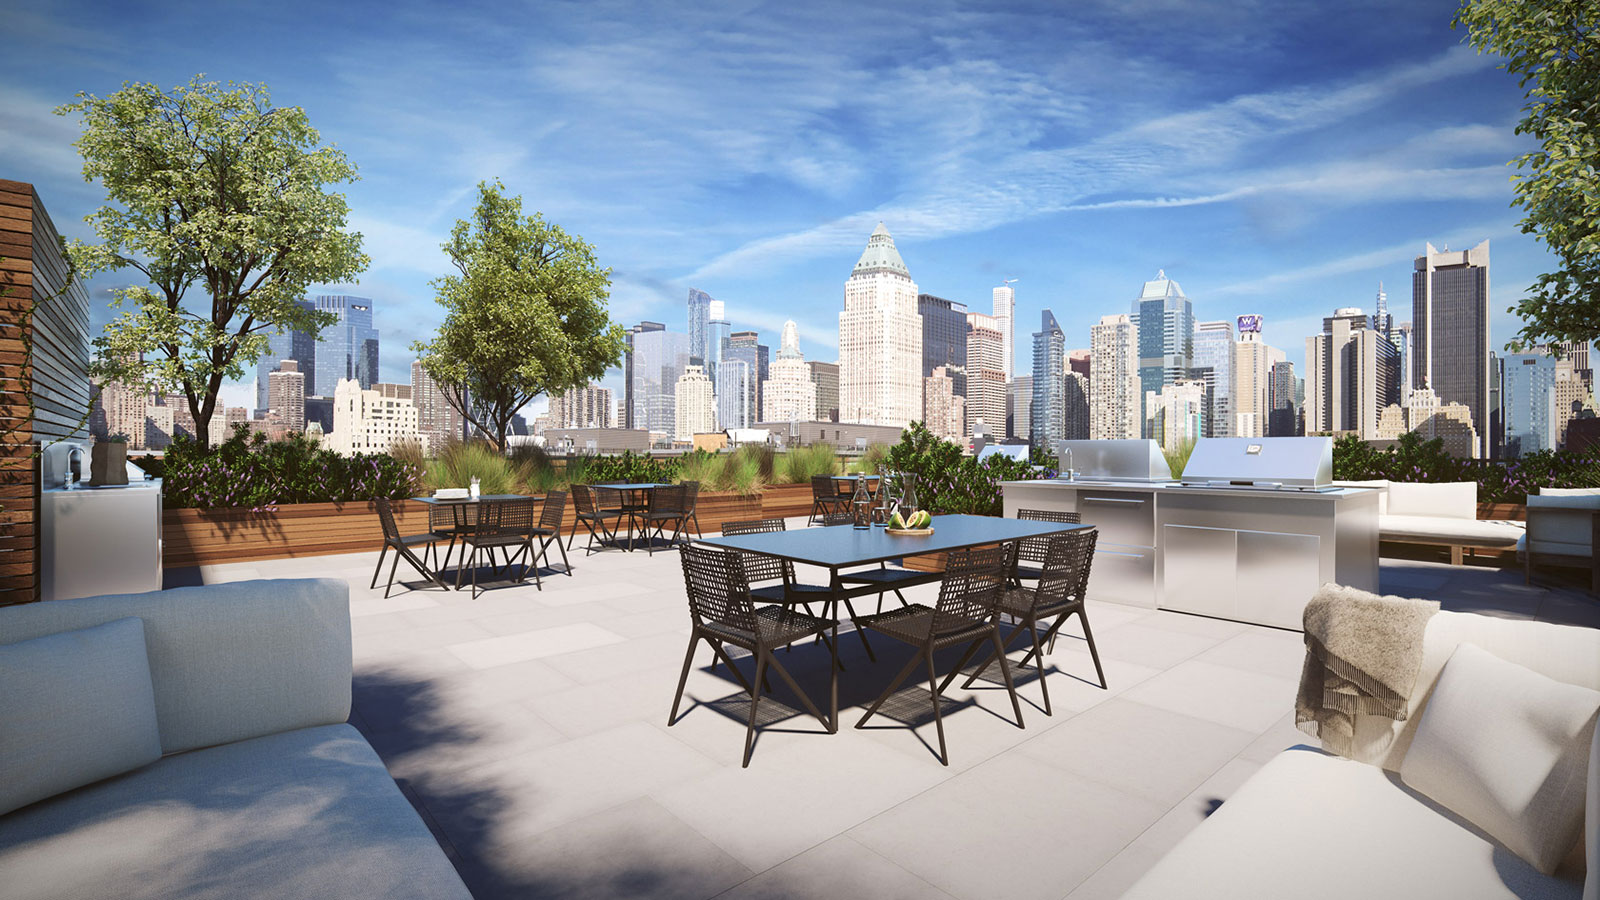 Hell 39 s kitchen 39 s 535w43 kicks off leasing and offers one for Hell s kitchen nyc apartments